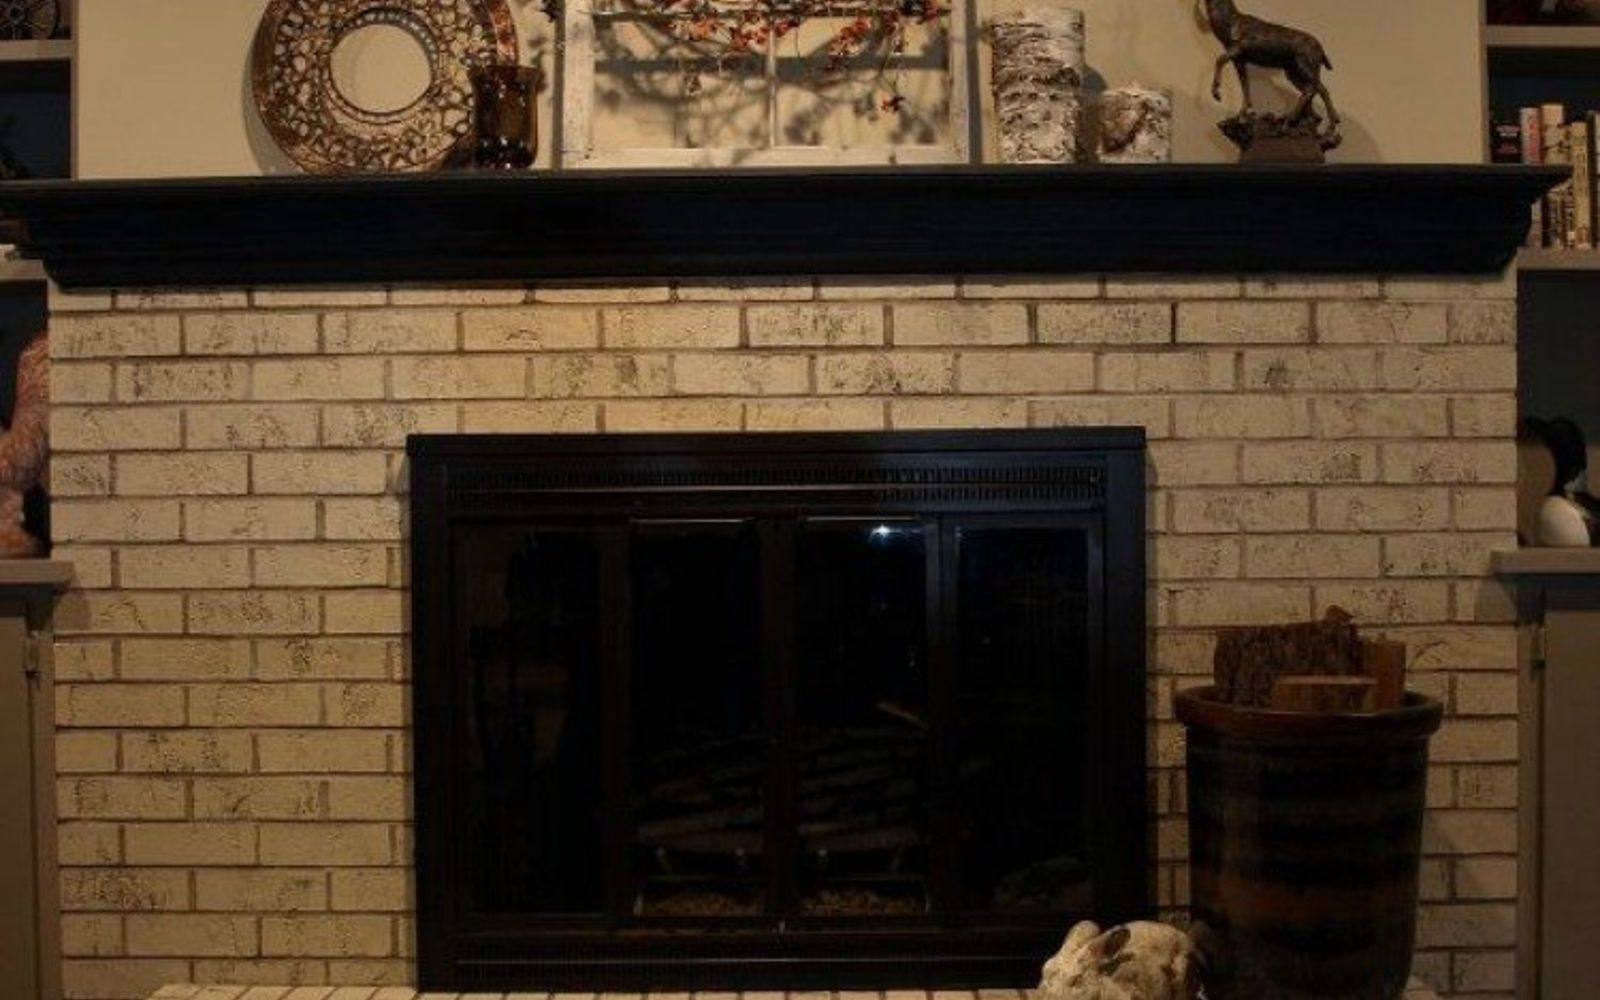 s 10 gorgeous ways to transform a brick fireplace without replacing it, concrete masonry, fireplaces mantels, The fix Paint it with chalk paint